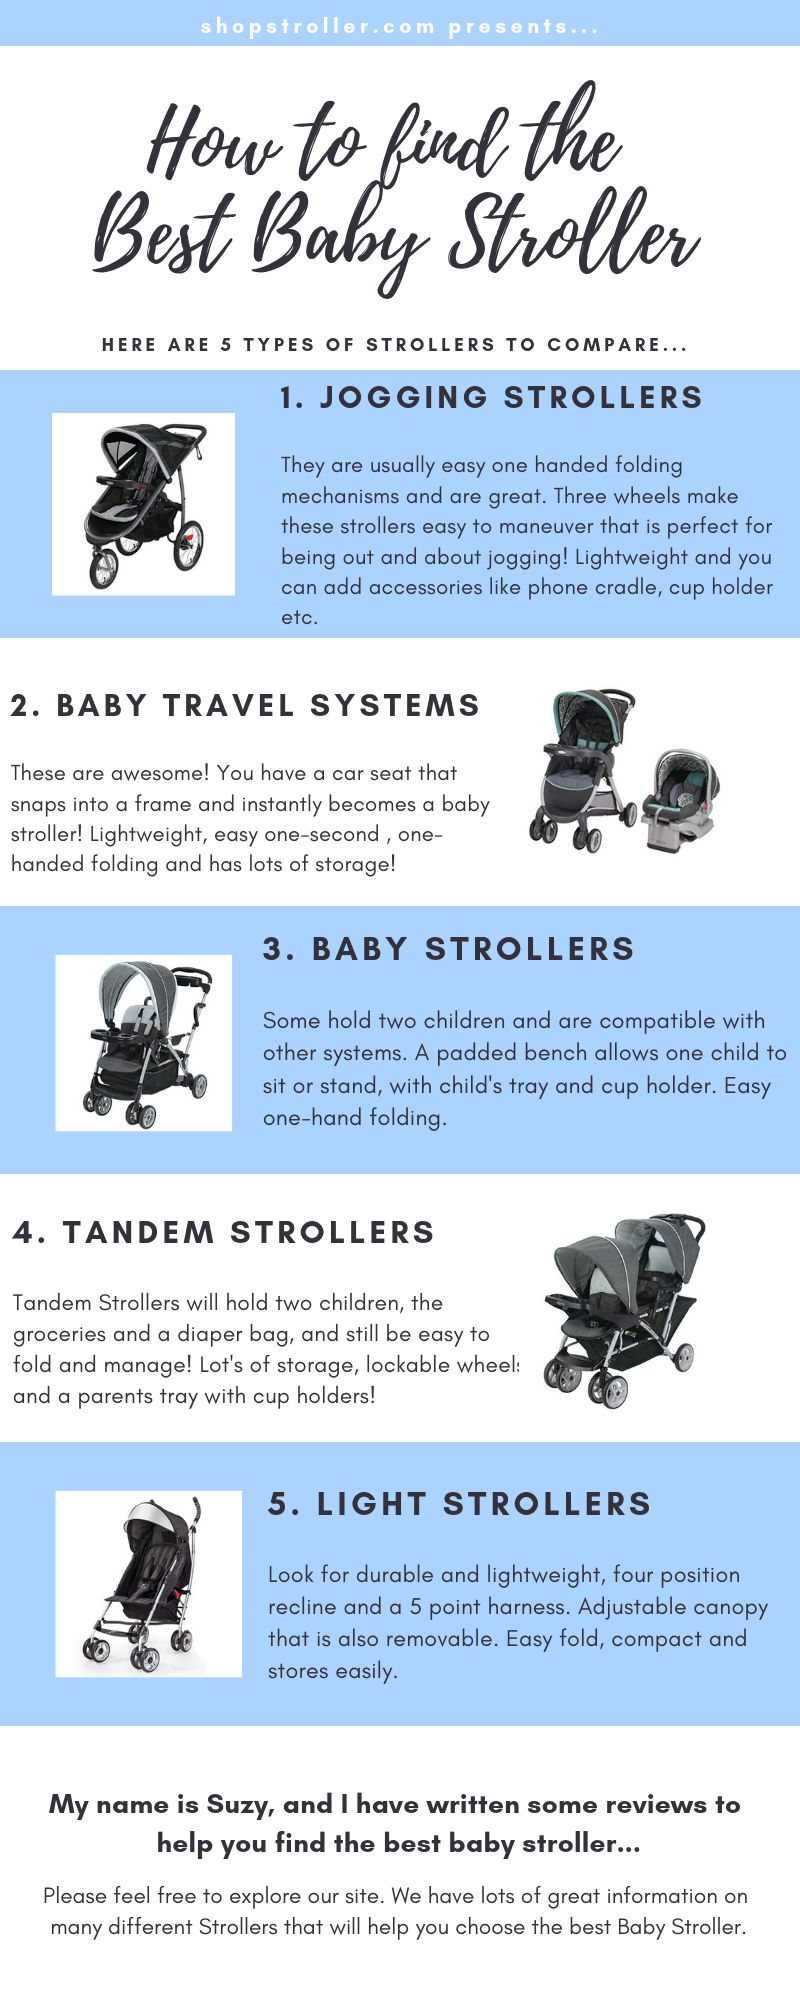 How-to-find-the-Best-Baby-Stroller-infog